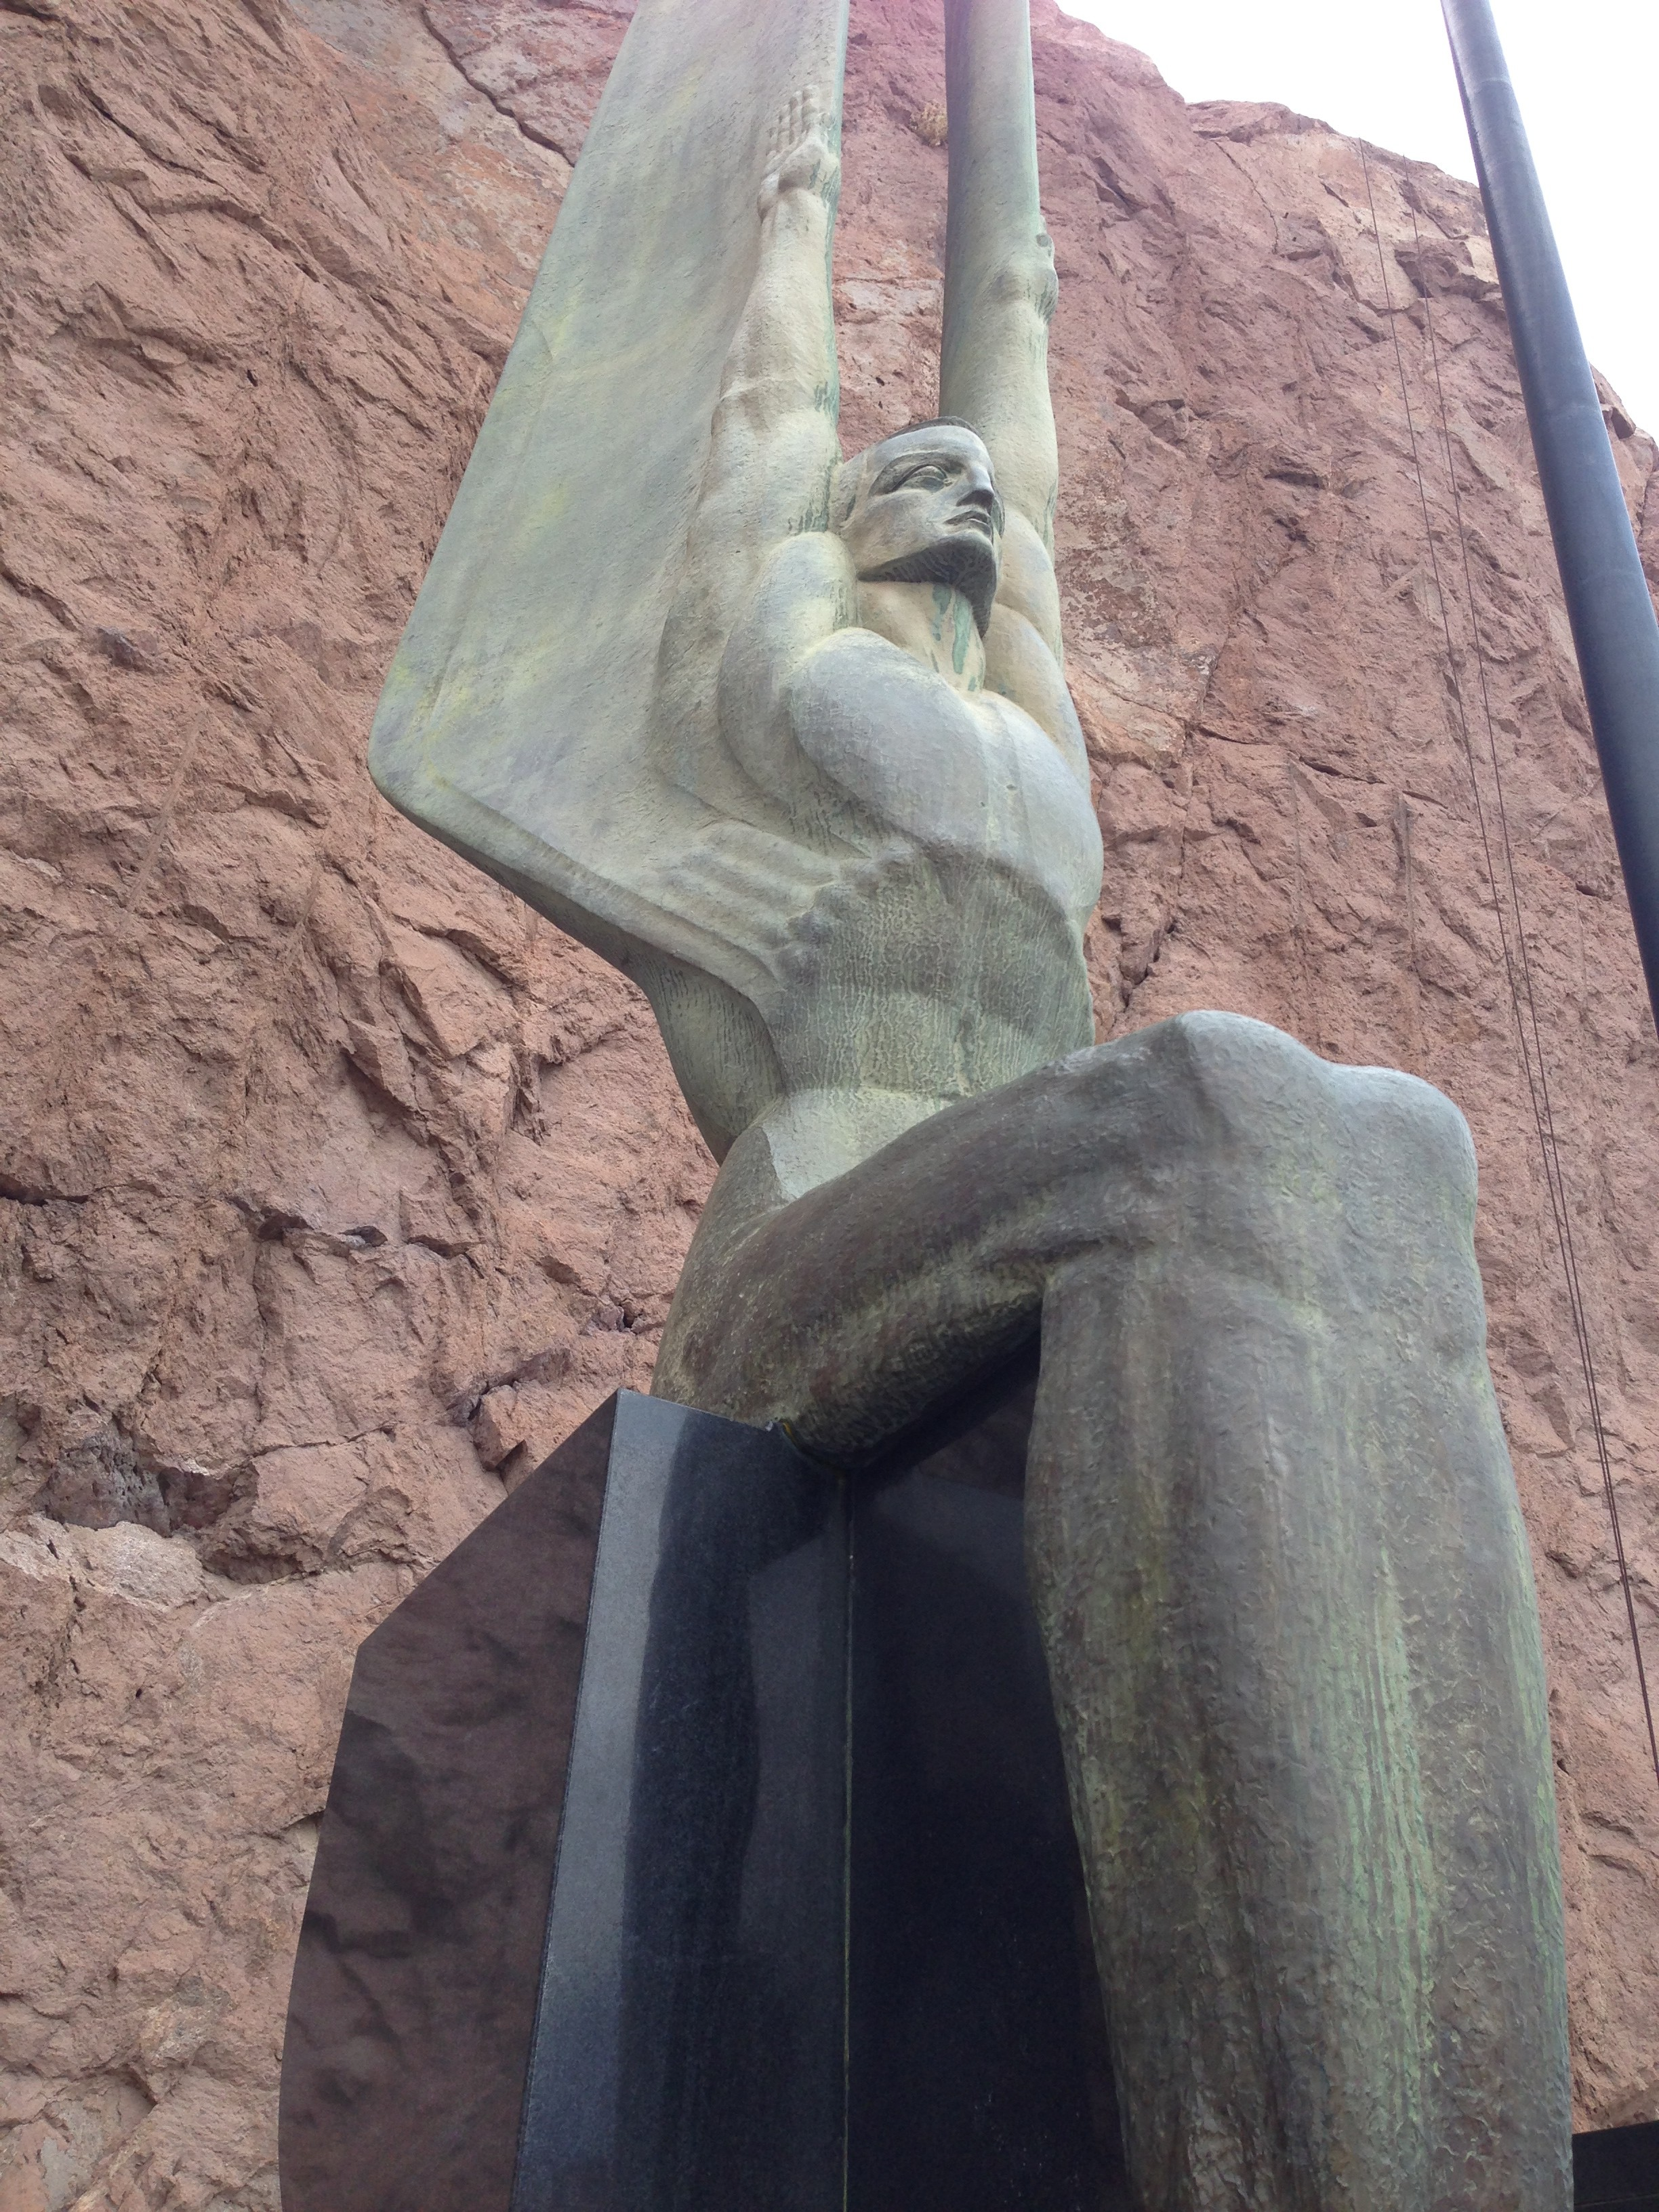 One of the figures at the Hoover Dam - I LOVE ART DECO!